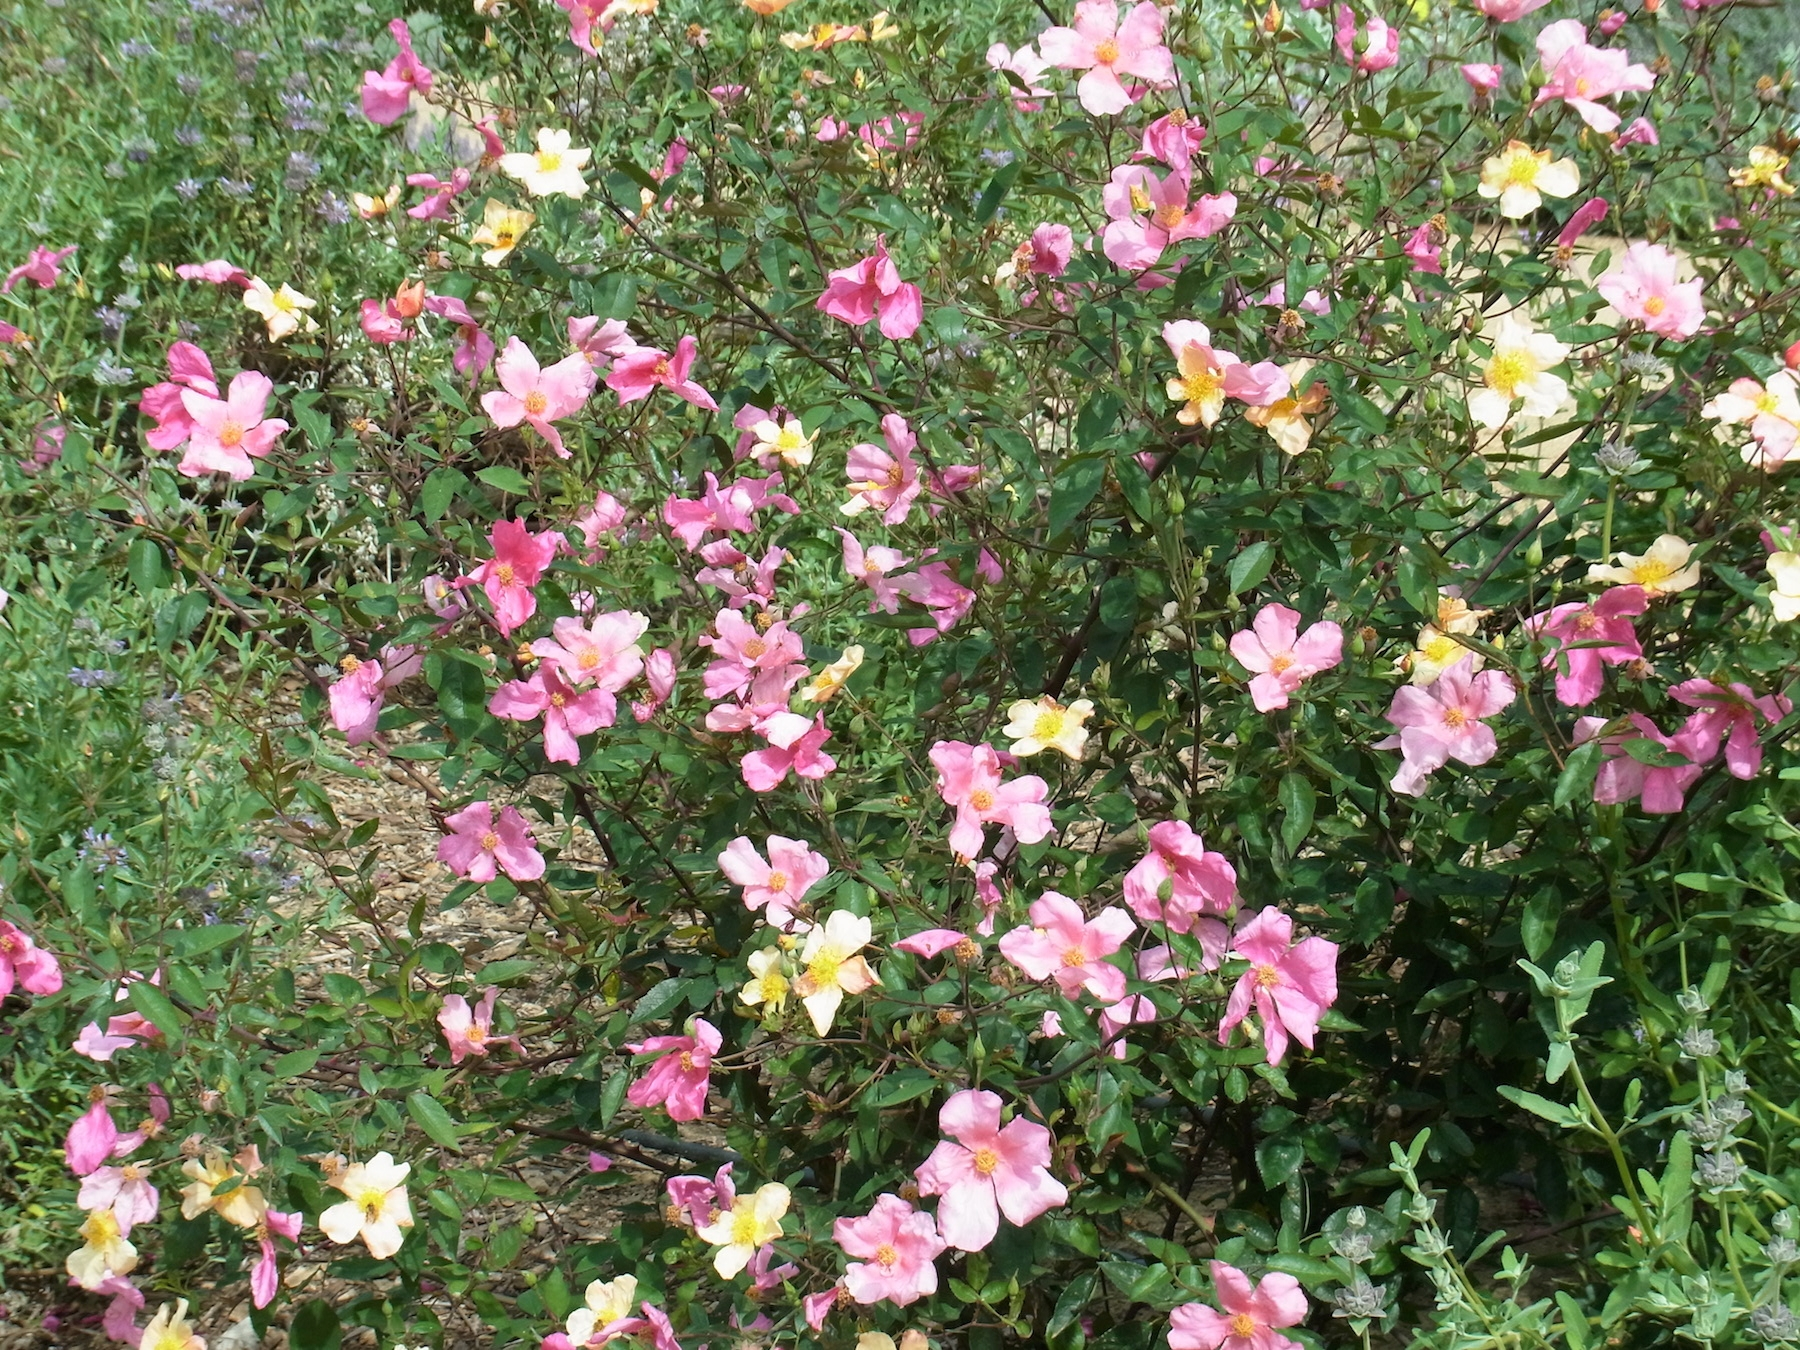 Roses may bee garden plant of the month the bee gardener anr blogs butterfly rose rosa x odorata mutabilis has a mix of yellow pink and deep pink flowers mightylinksfo